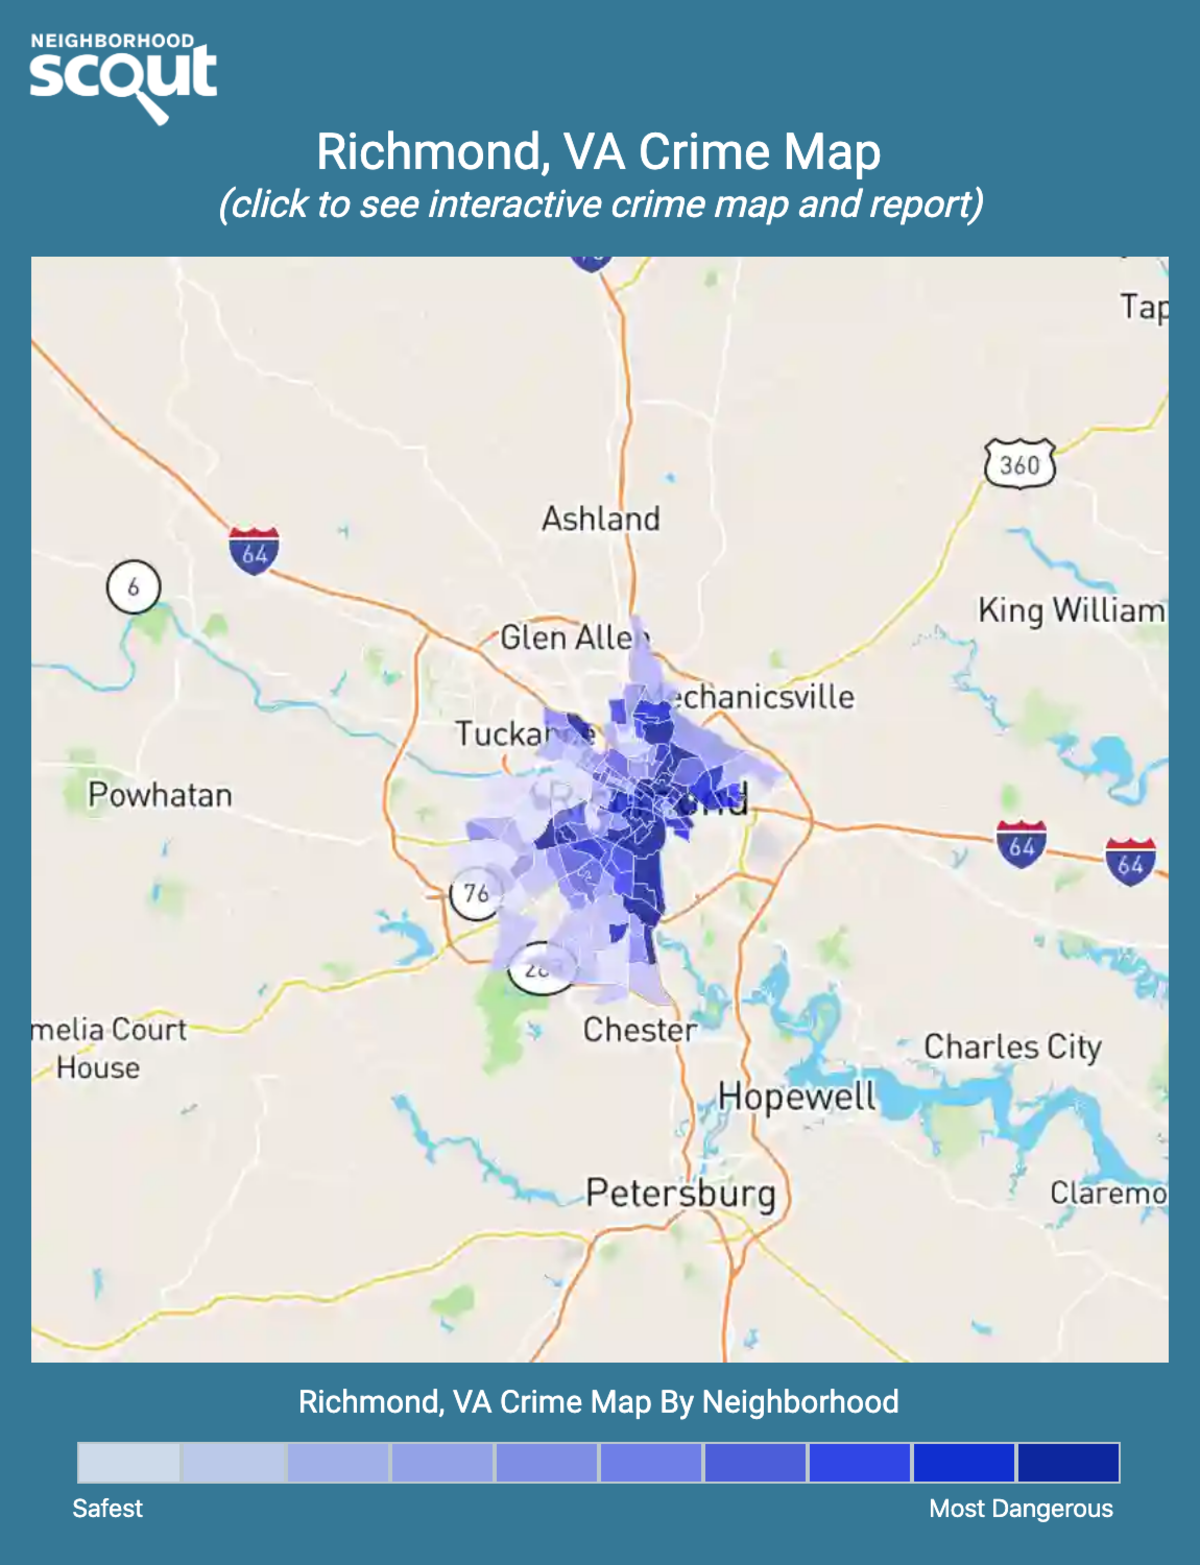 Richmond, Virginia crime map